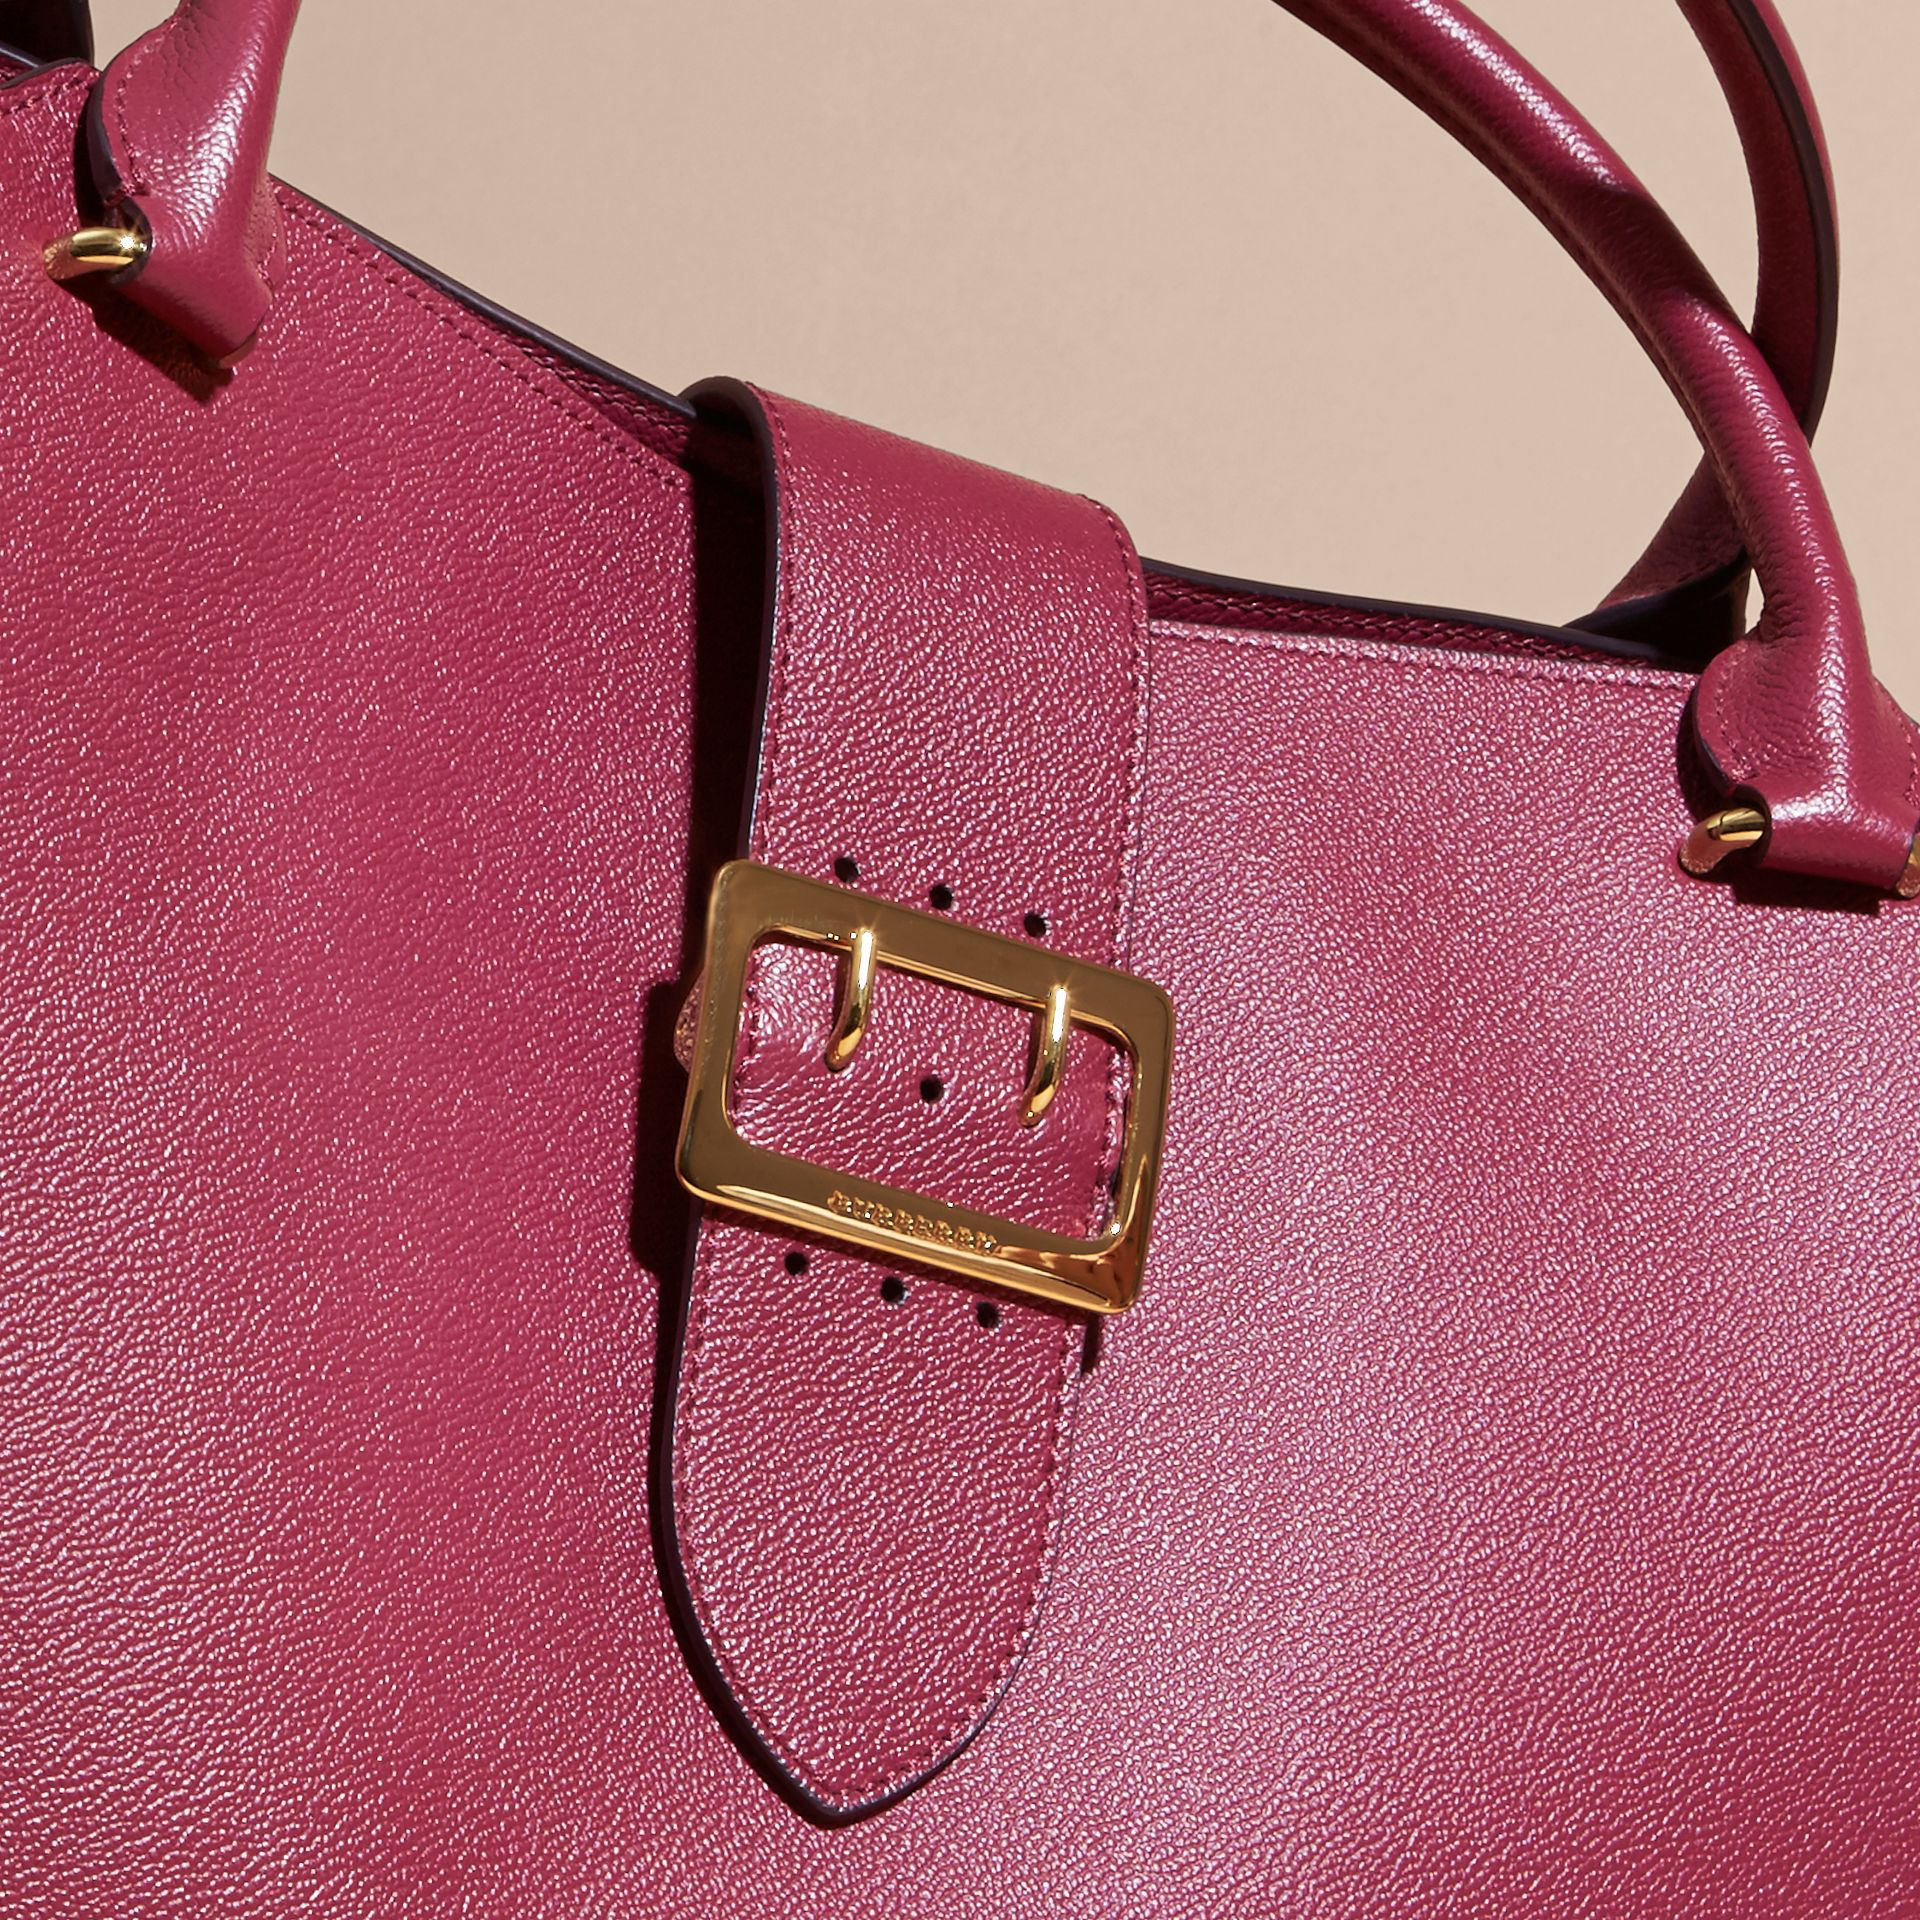 The Large Buckle Tote in Grainy Leather in Dark Plum - gallery image 2